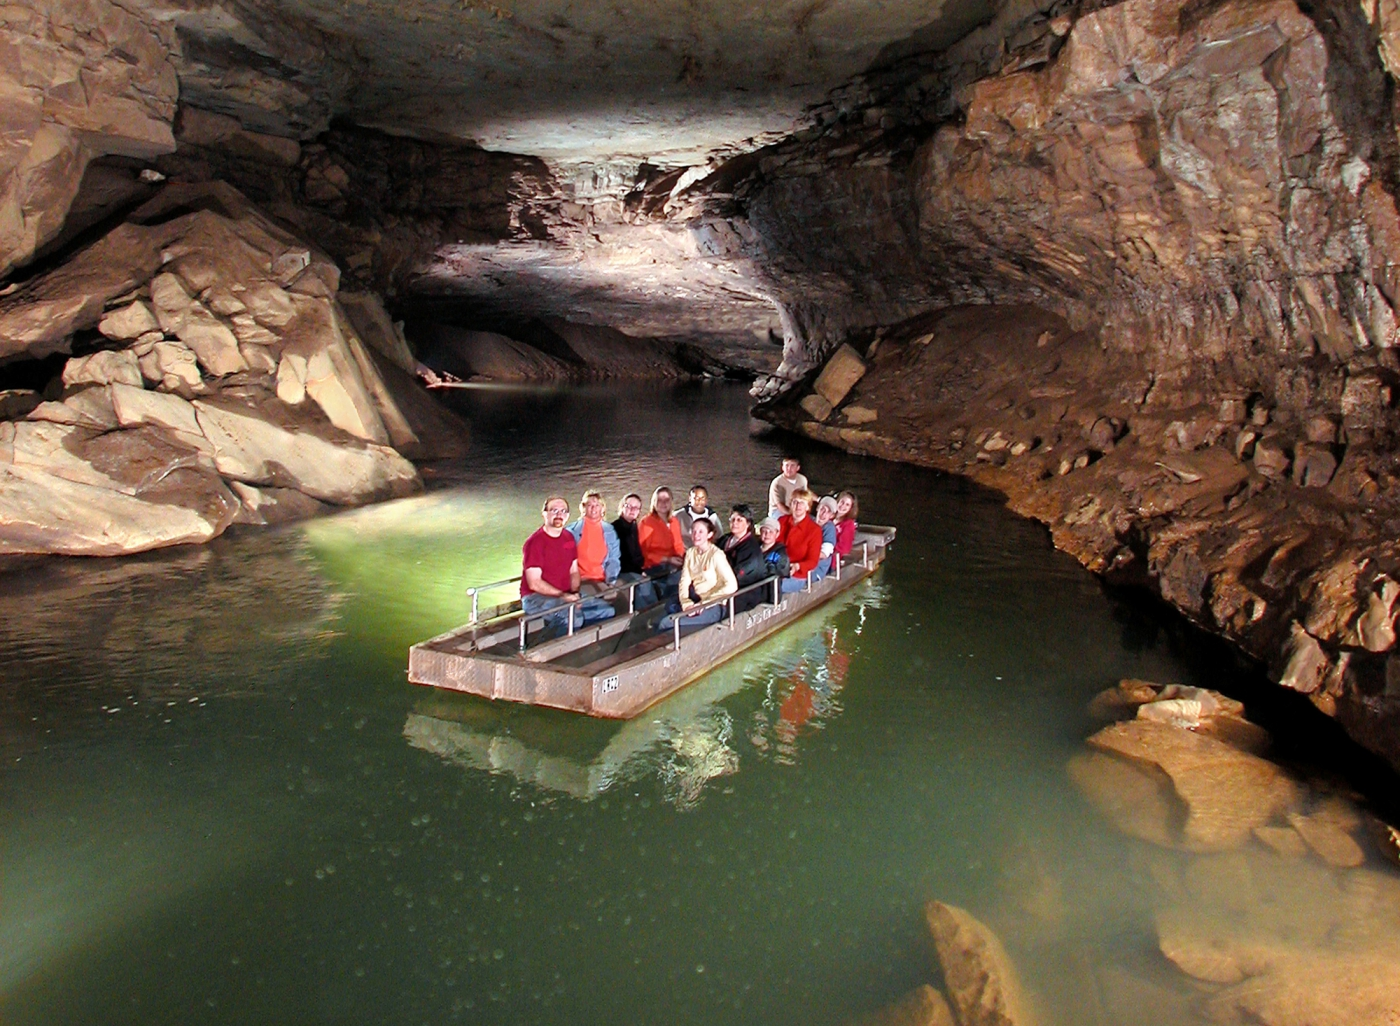 Kentucky's only underground boat ride at Lost River Cave - Bowling Green, Kentucky